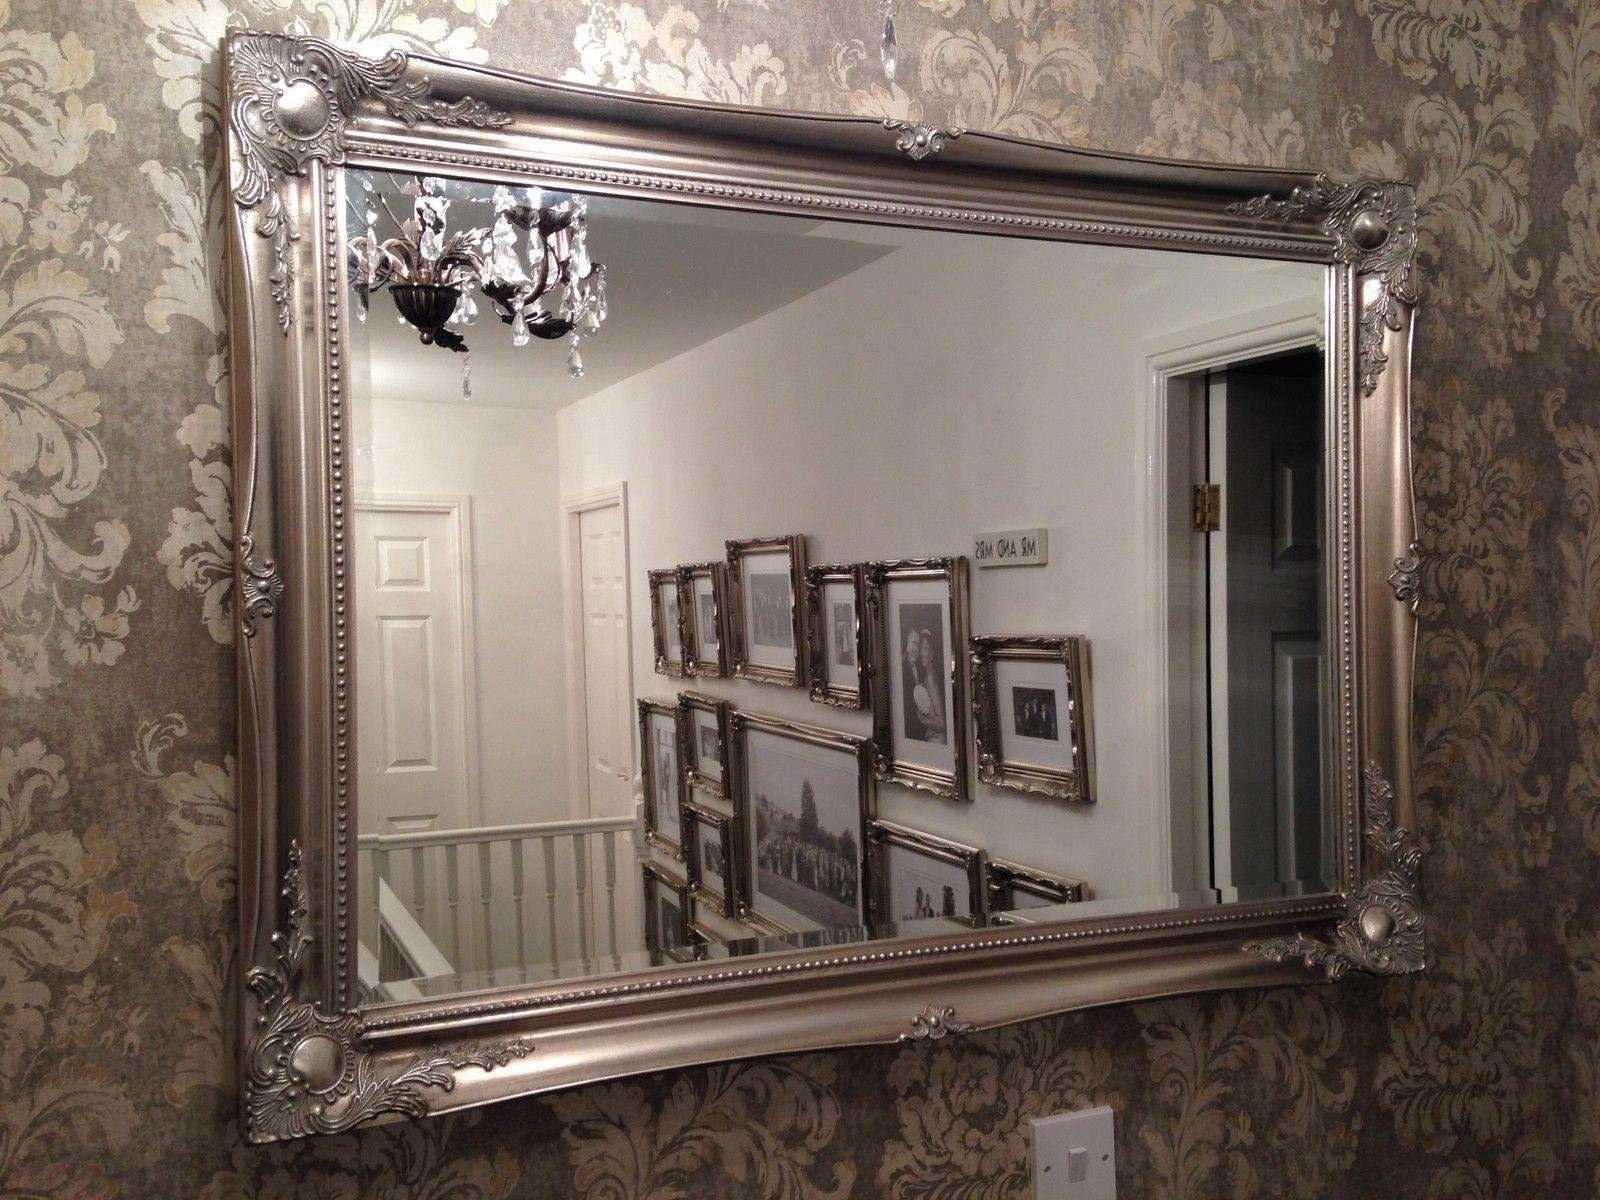 Classic Impression On Antique Wall Mirrors | Vwho With Regard To Antique Cream Wall Mirrors (View 12 of 20)